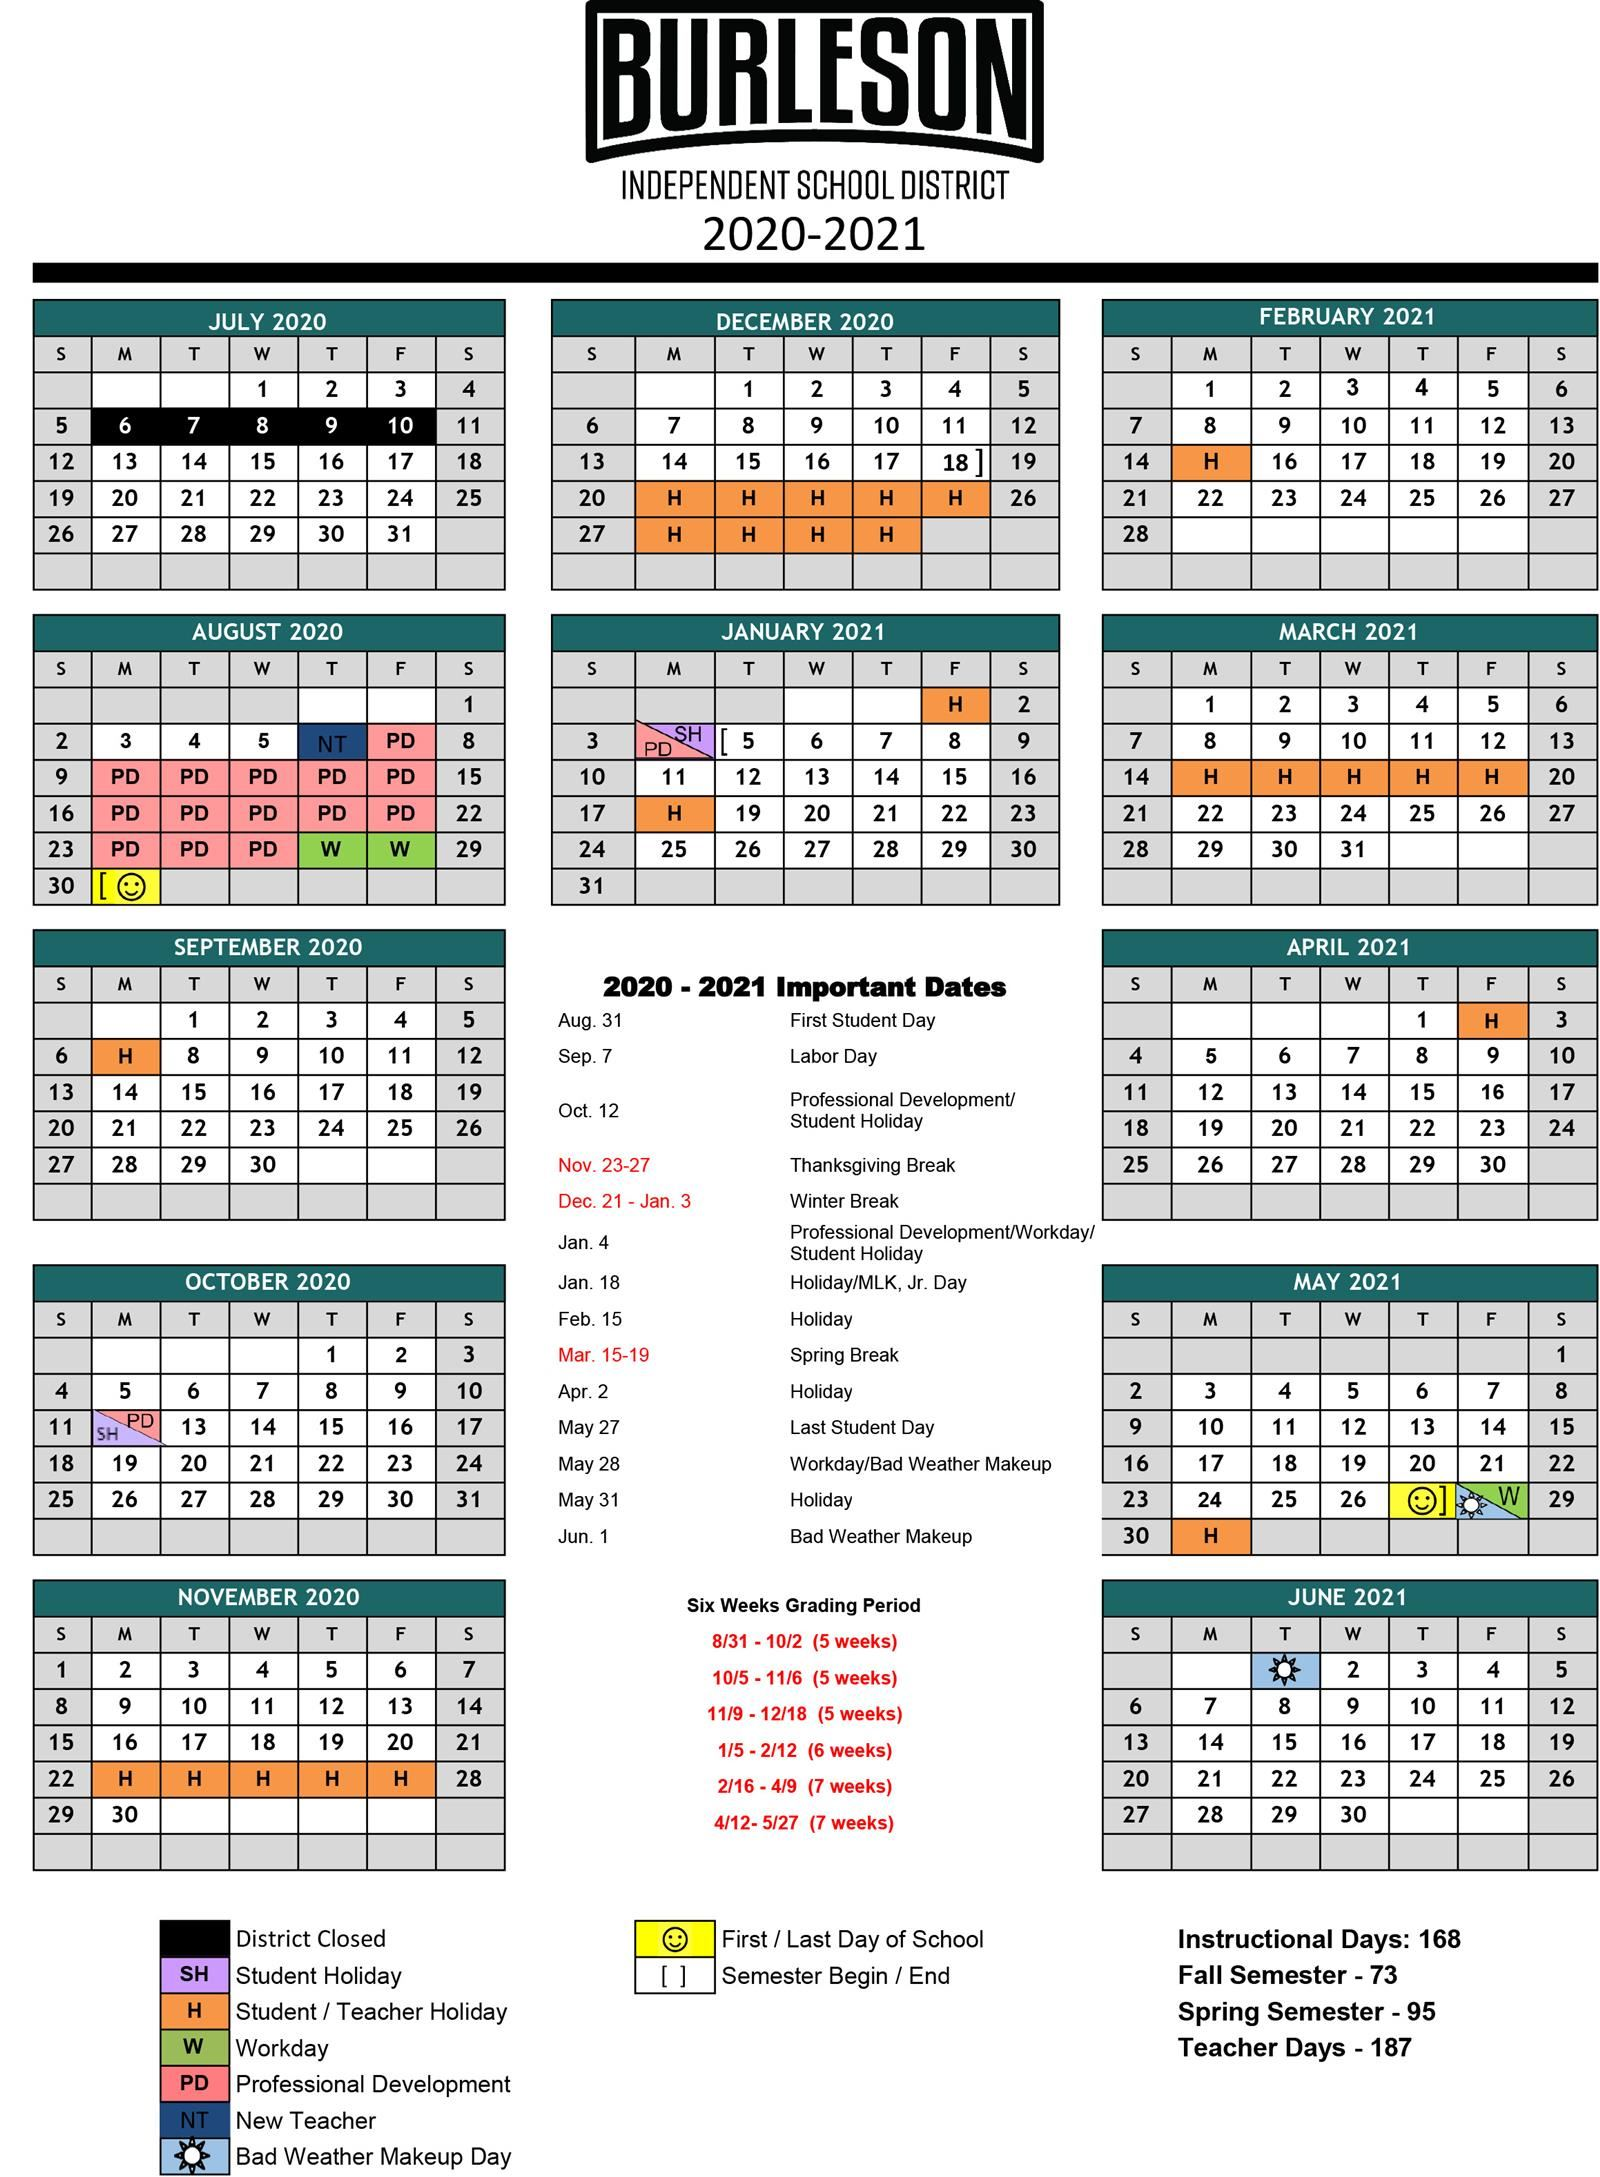 BISD 2020-2021 School Year Calendar Update